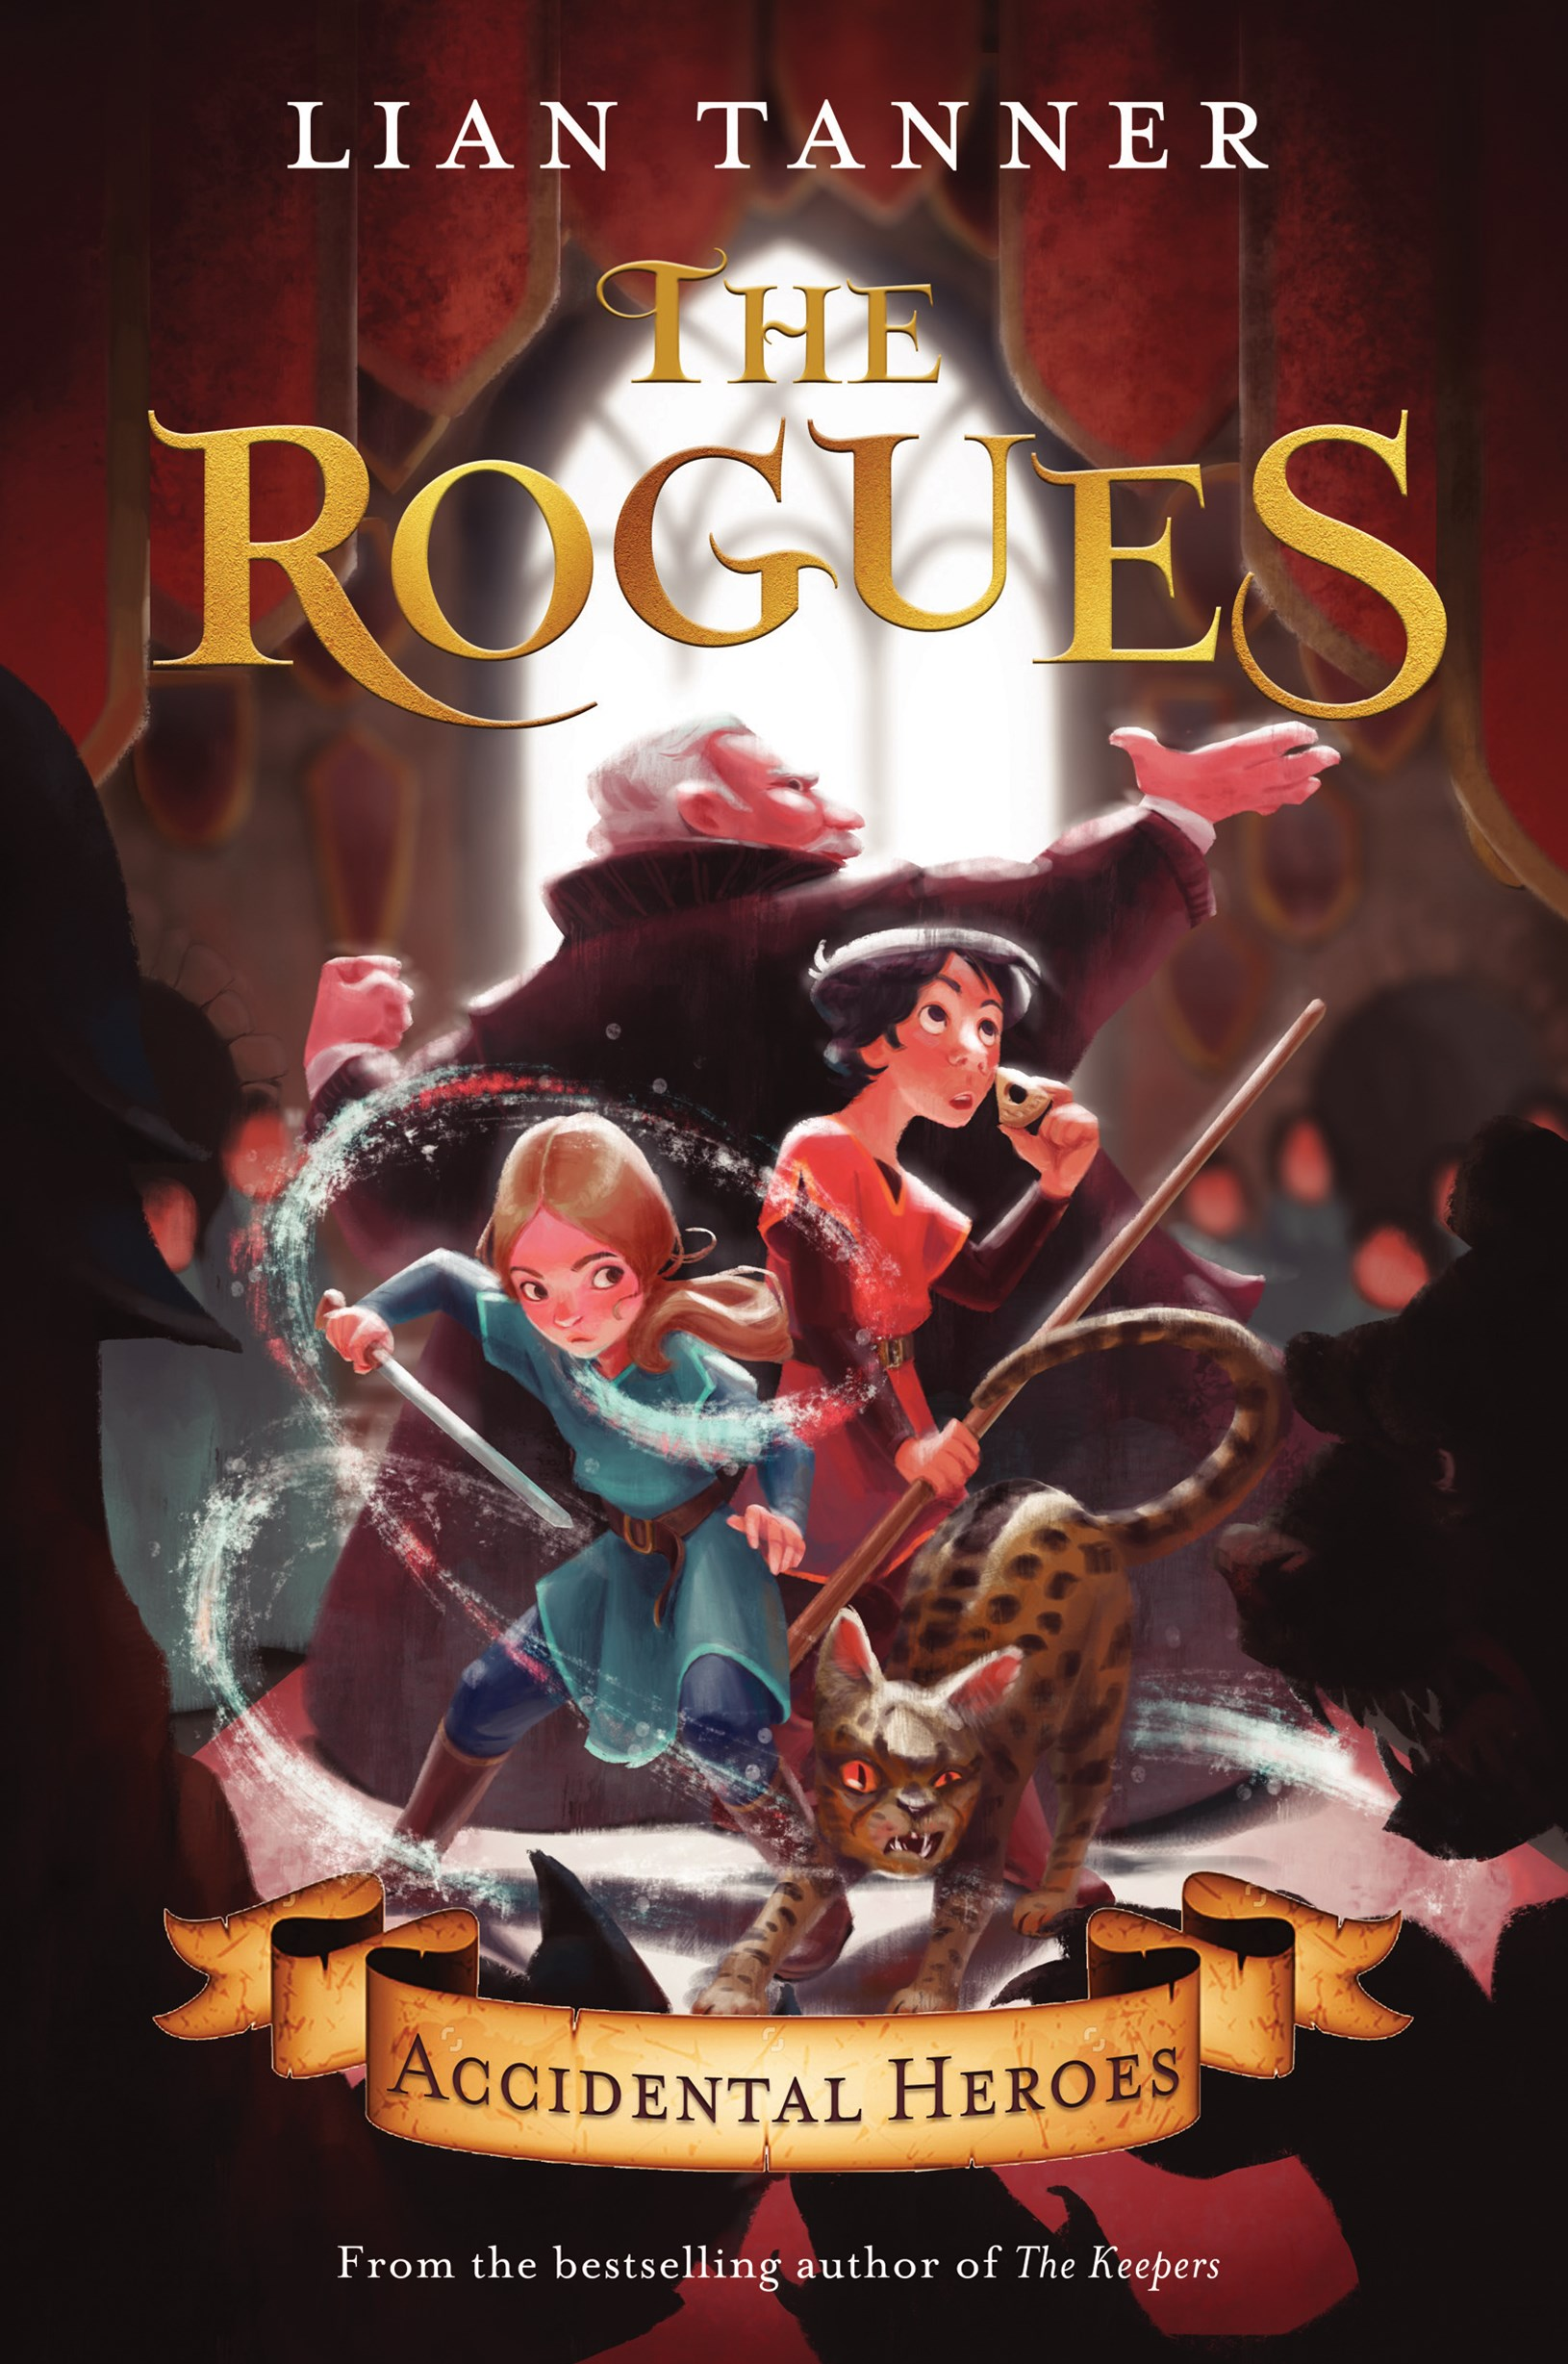 Accidental Heroes: The Rogues 1